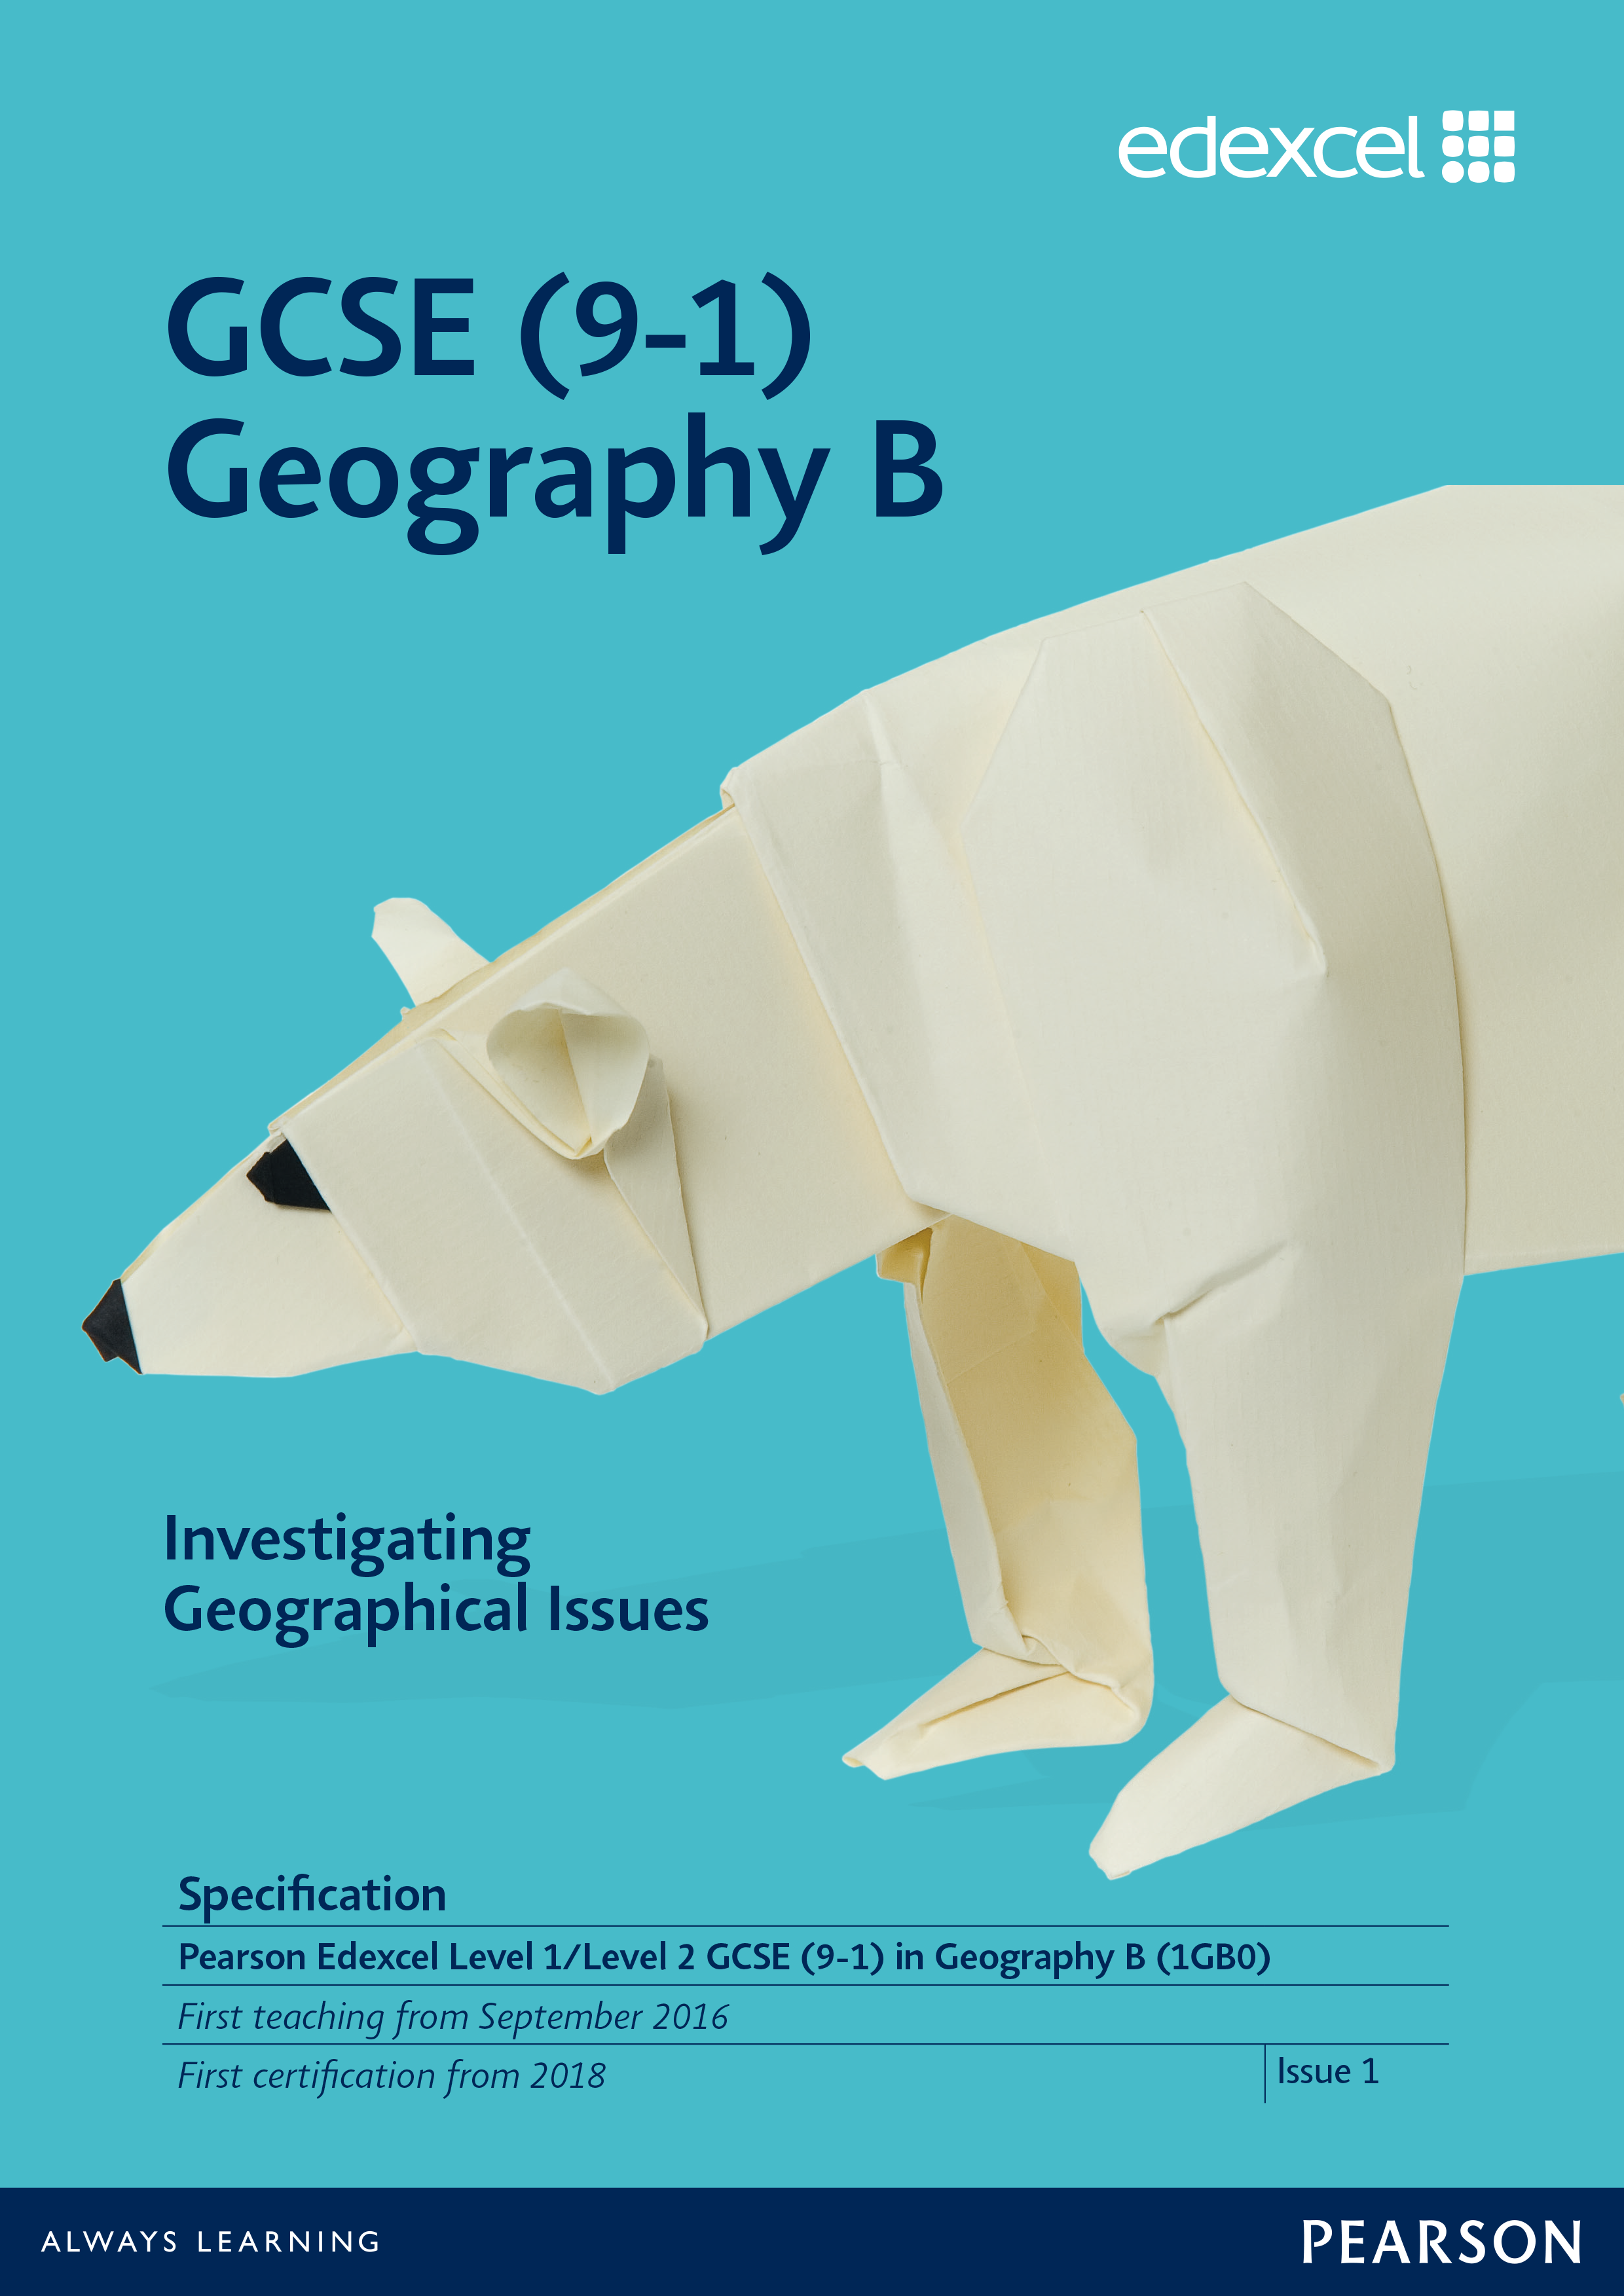 Link to Edexcel GCSE Geography B (2016) specification page